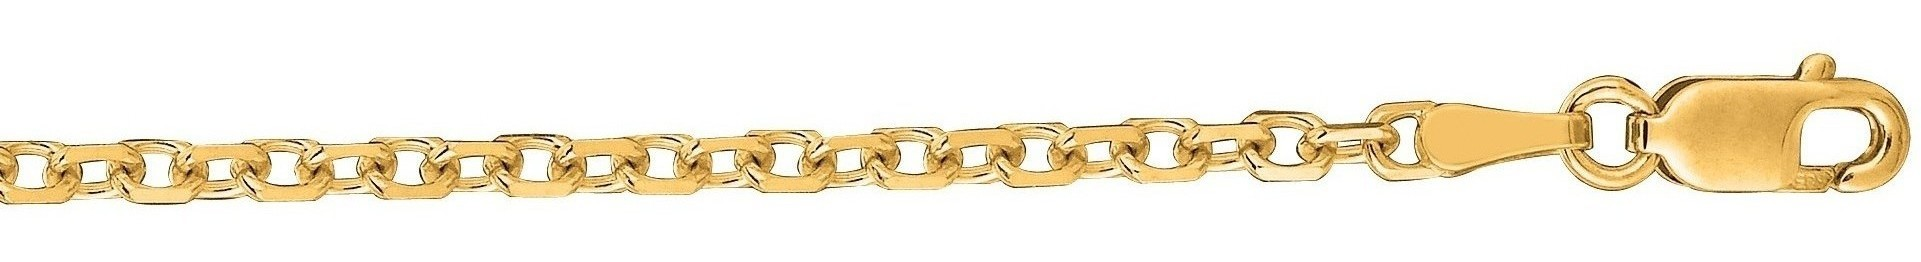 "30"" 14K Yellow Gold 2.3mm (0.09"") Polished Diamond Cut Cable Link Chain w/ Lobster Clasp"